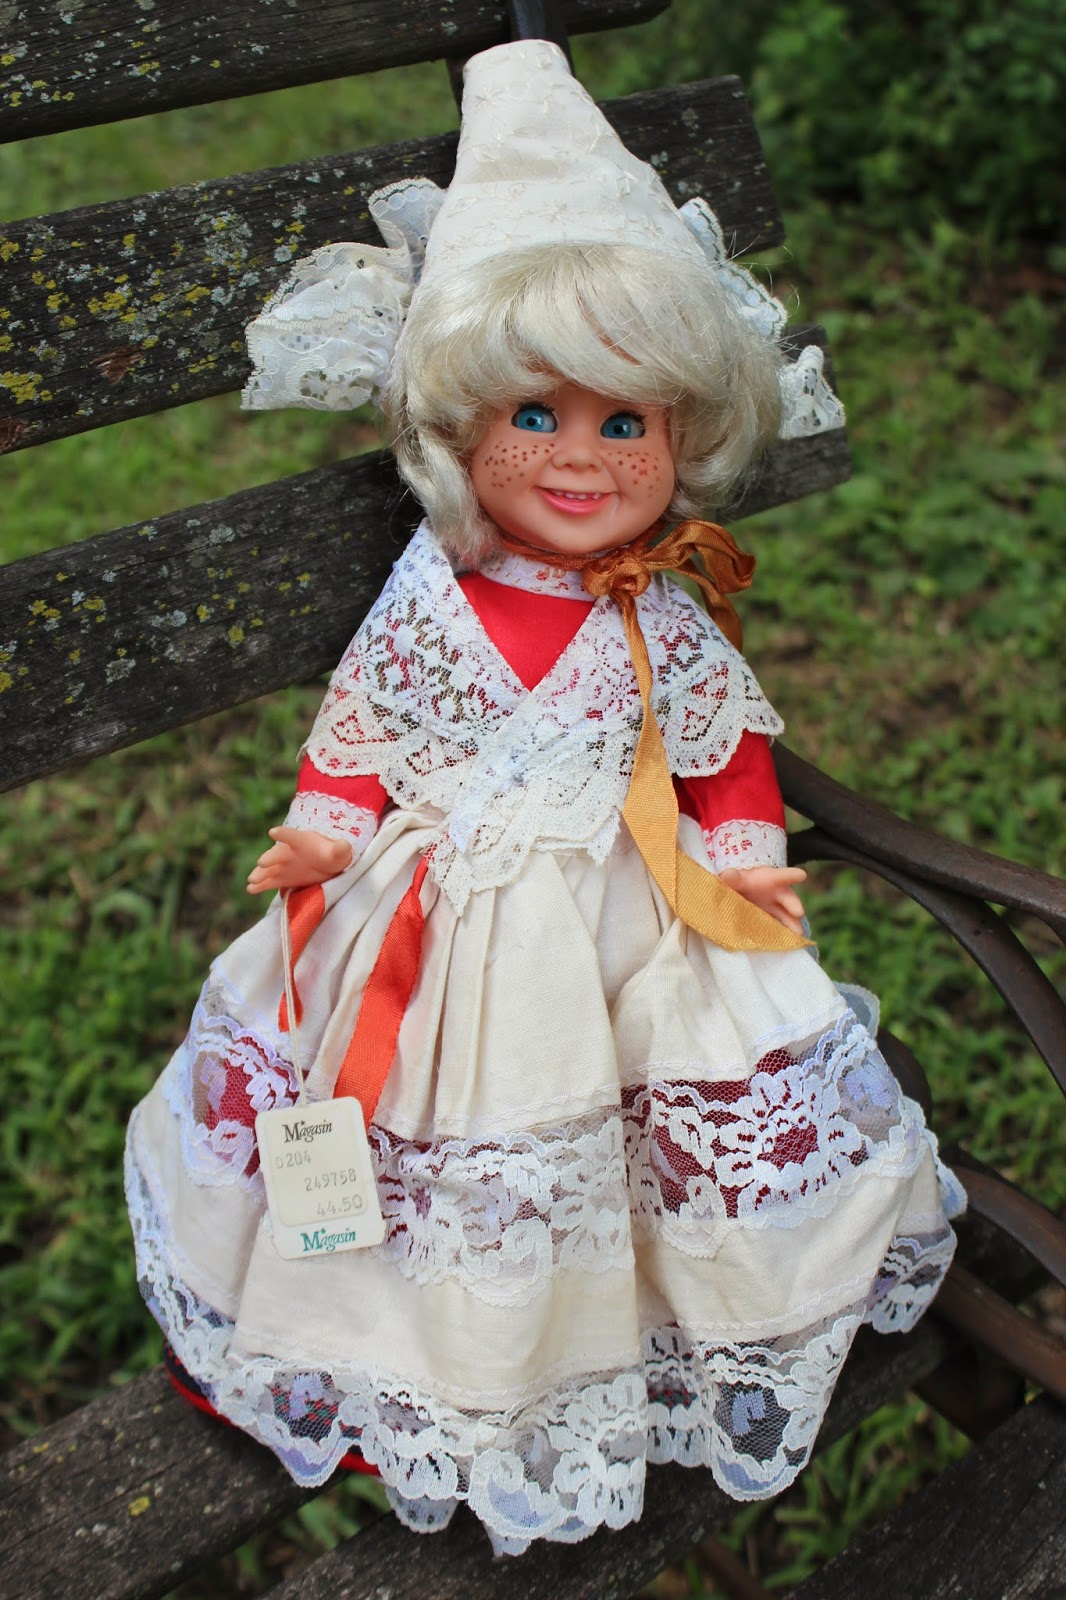 Planet Of The Dolls Doll A Day 194 Ratti Tjorven Doll